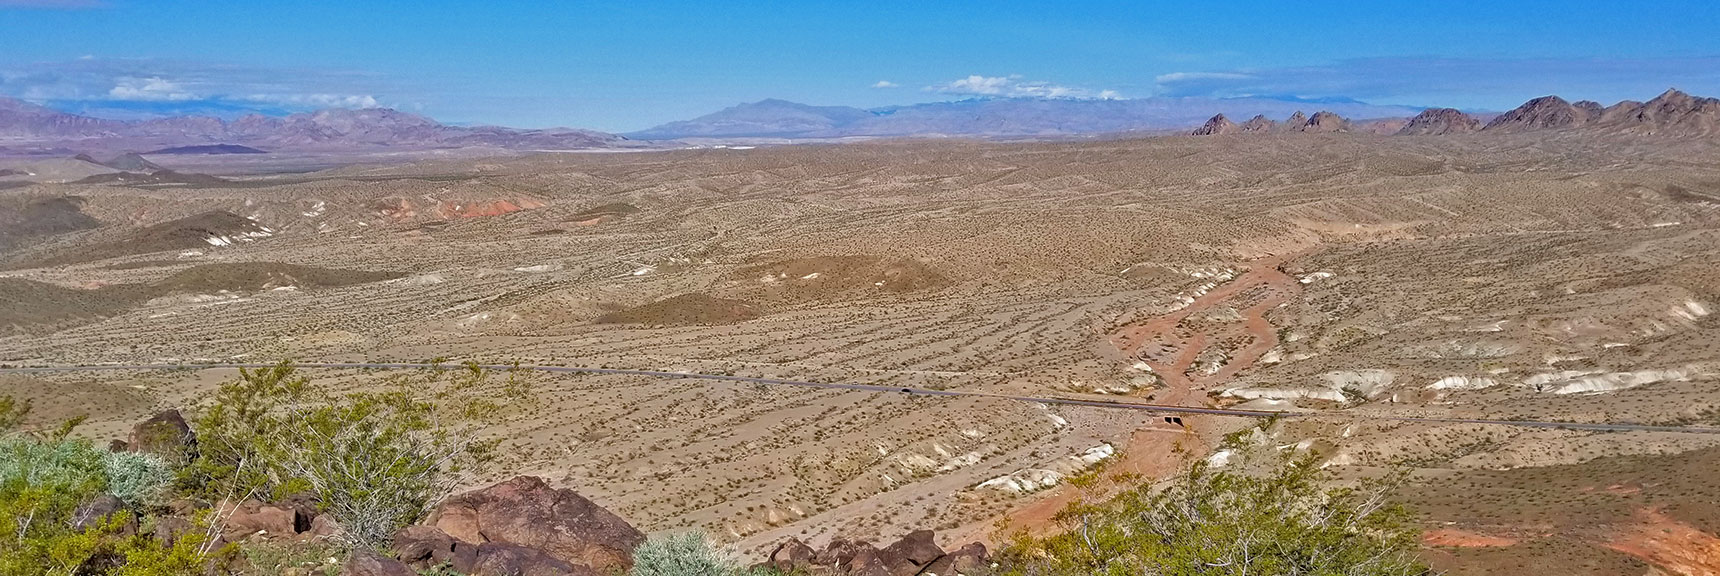 View Northwest Toward Gass Peak from Black Mesa in Lake Mead National Recreation Area, Nevada